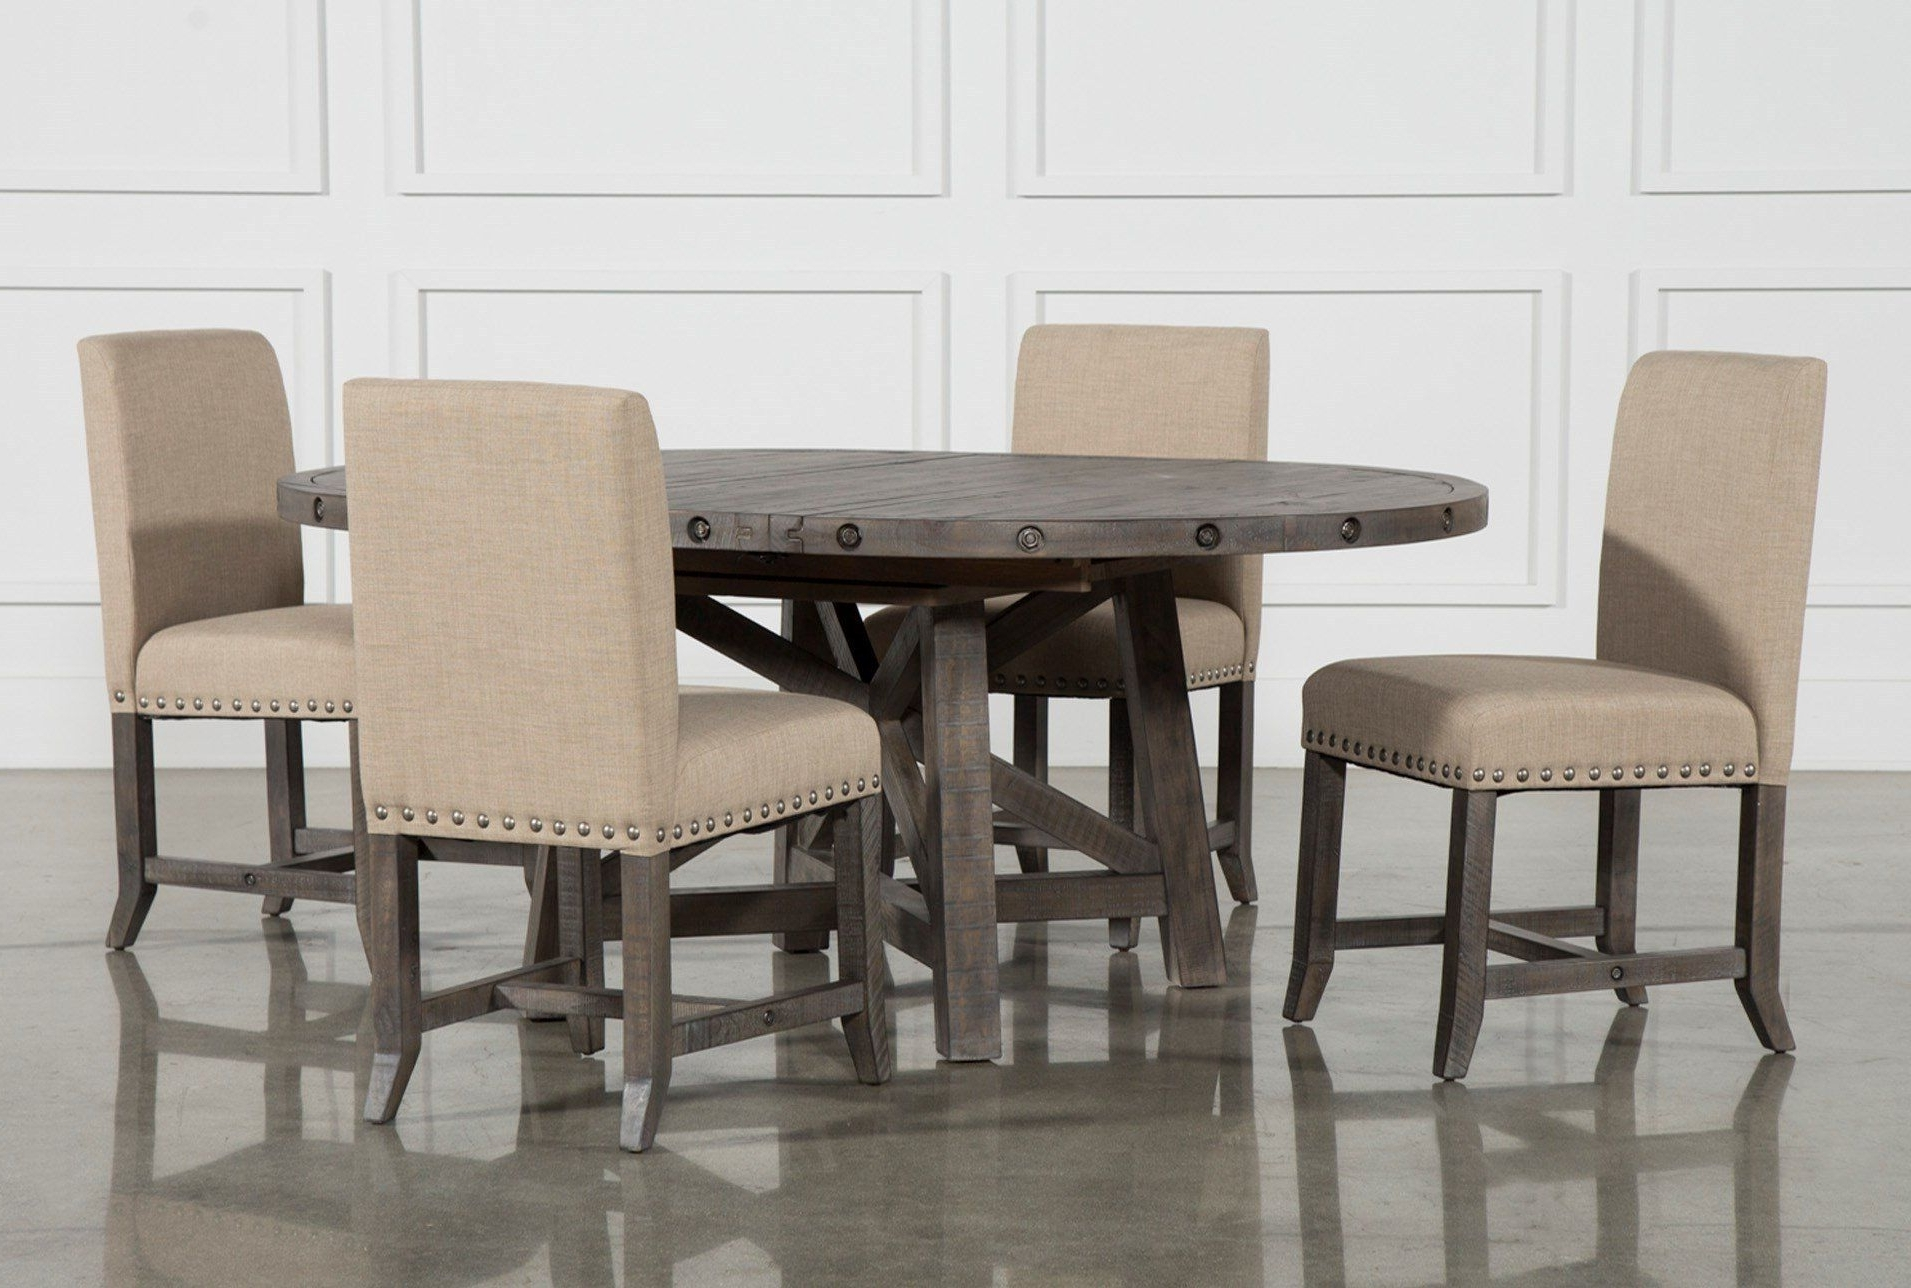 Jaxon Grey 5 Piece Round Extension Dining Set W/upholstered Chairs Regarding Recent Combs 5 Piece Dining Sets With  Mindy Slipcovered Chairs (Gallery 4 of 25)